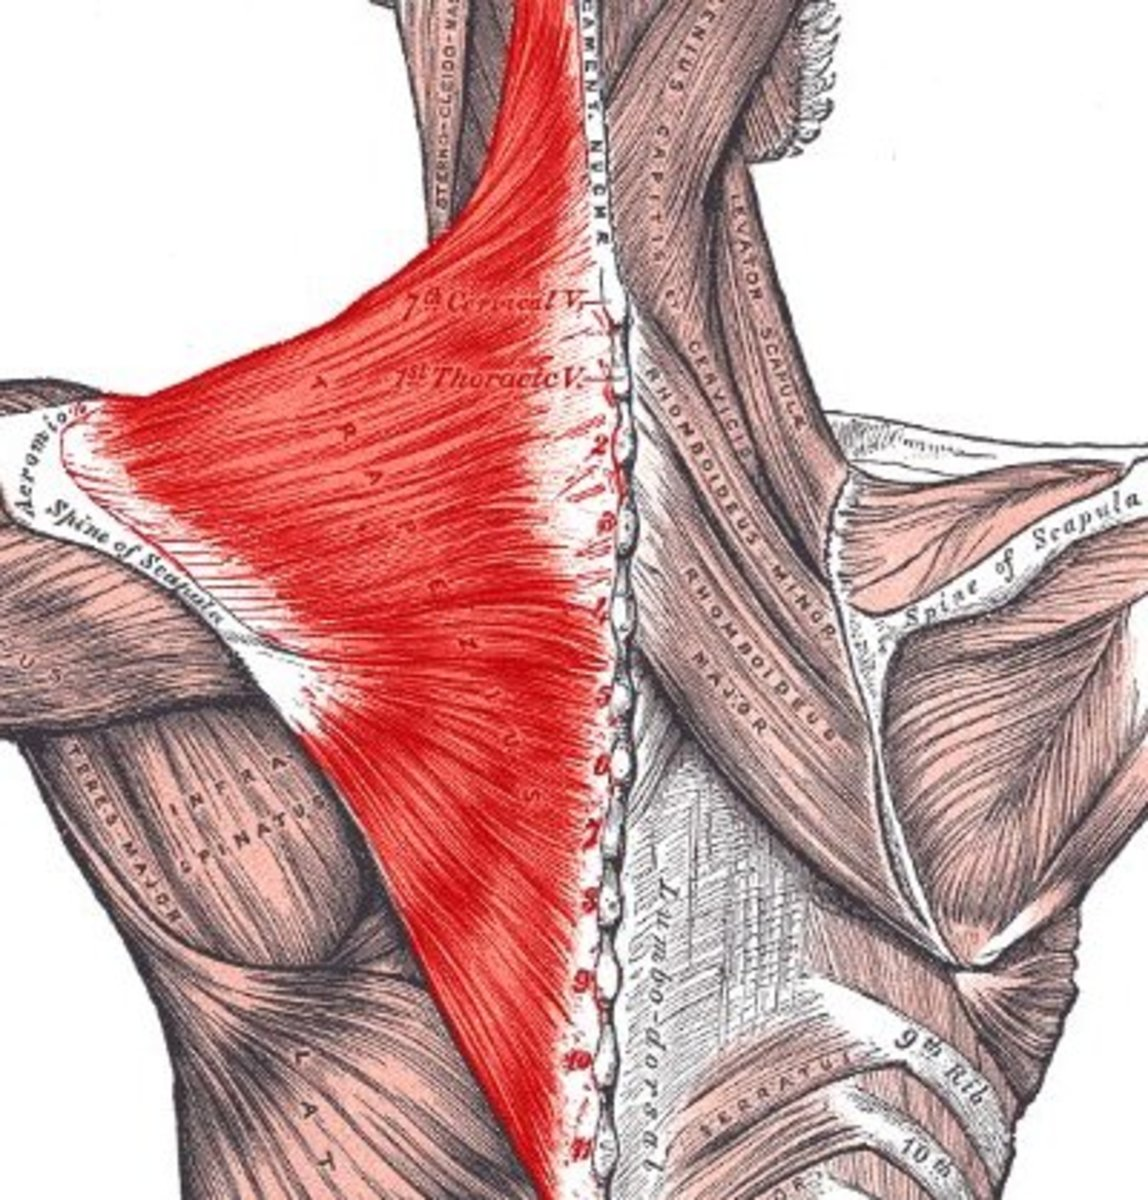 For illustration purposes only: The extent of the Trapezius muscle highlighted in red.